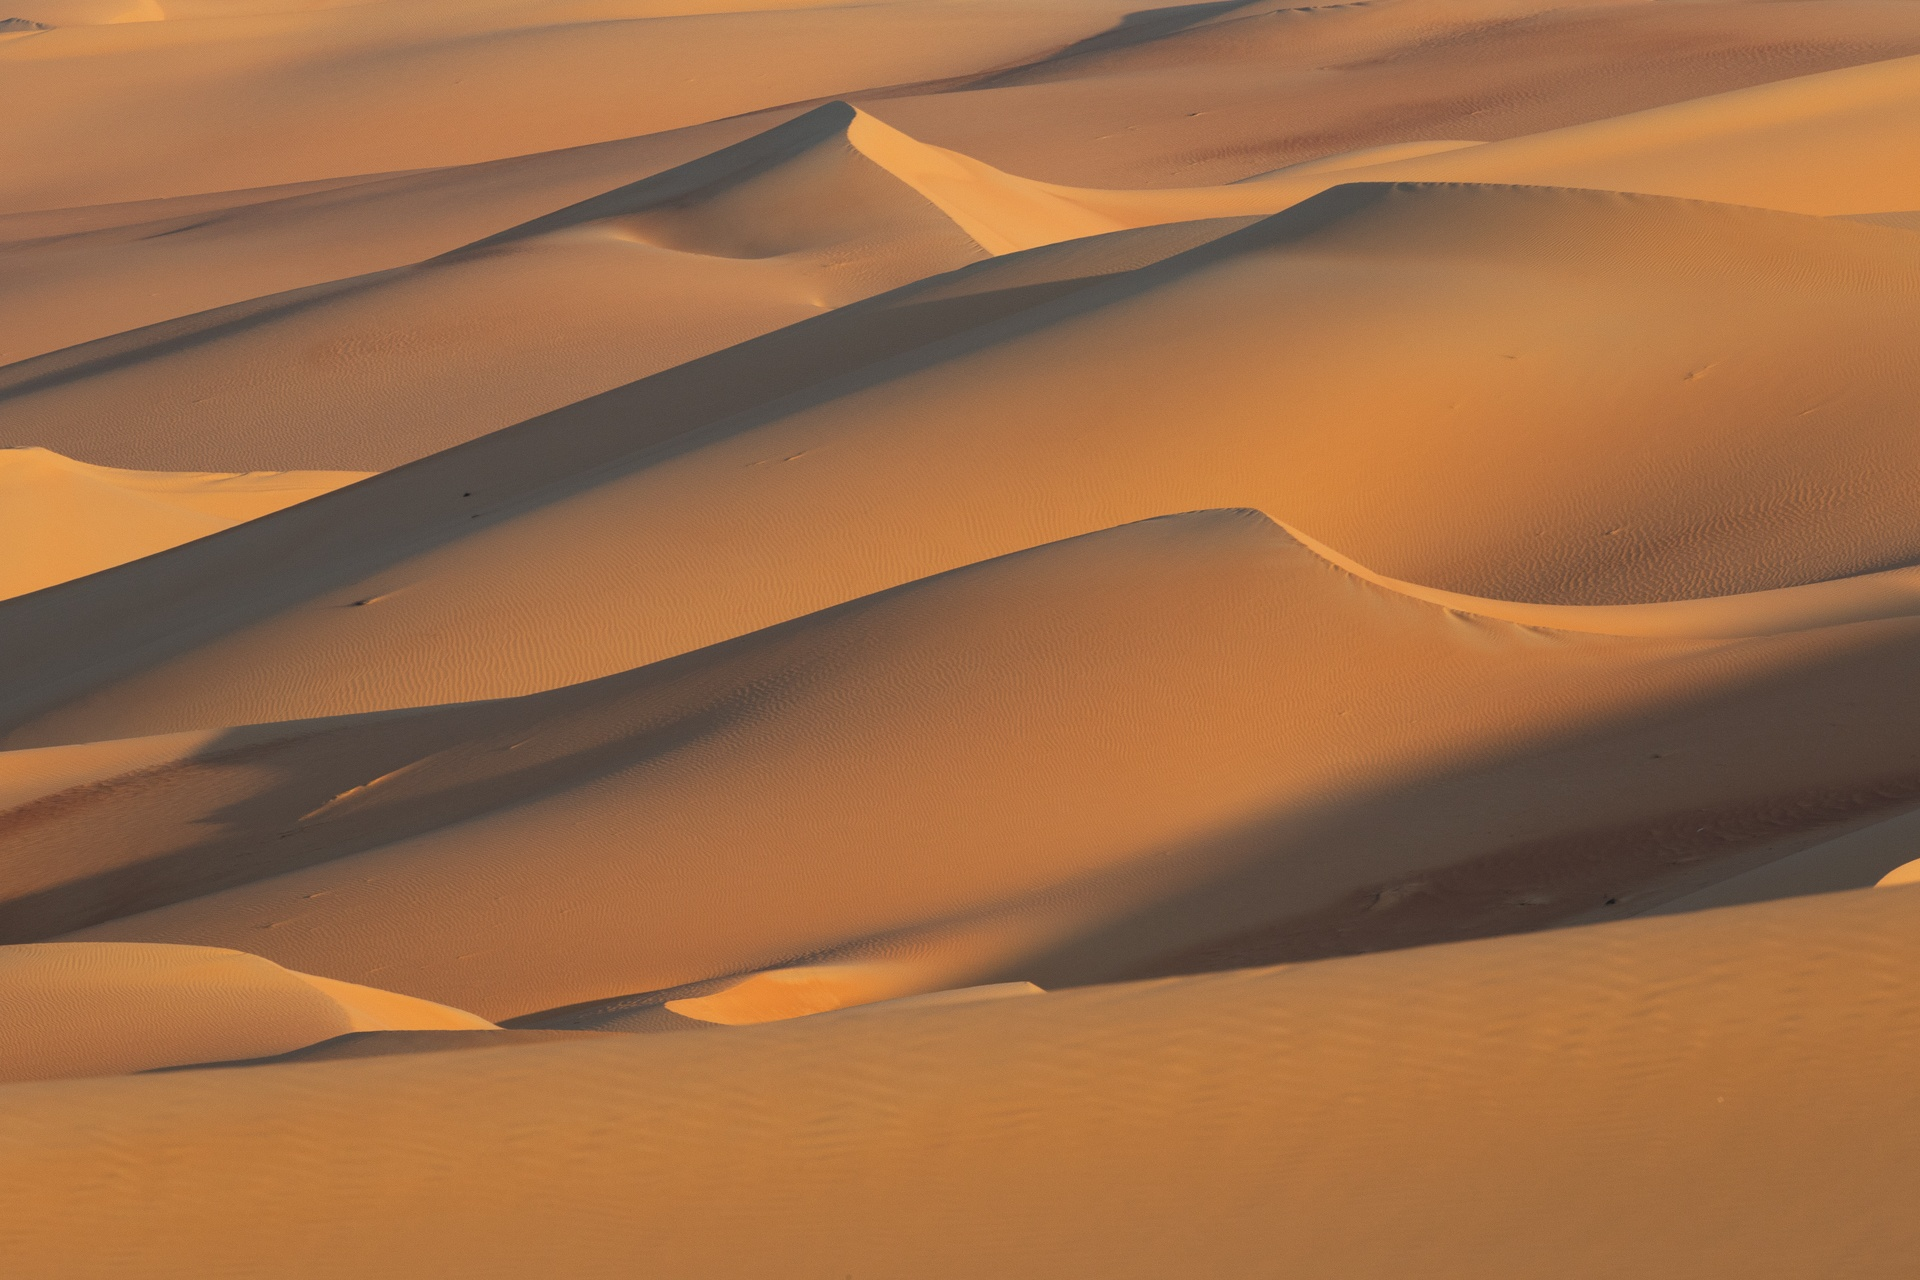 A 'sea' of sand dunes